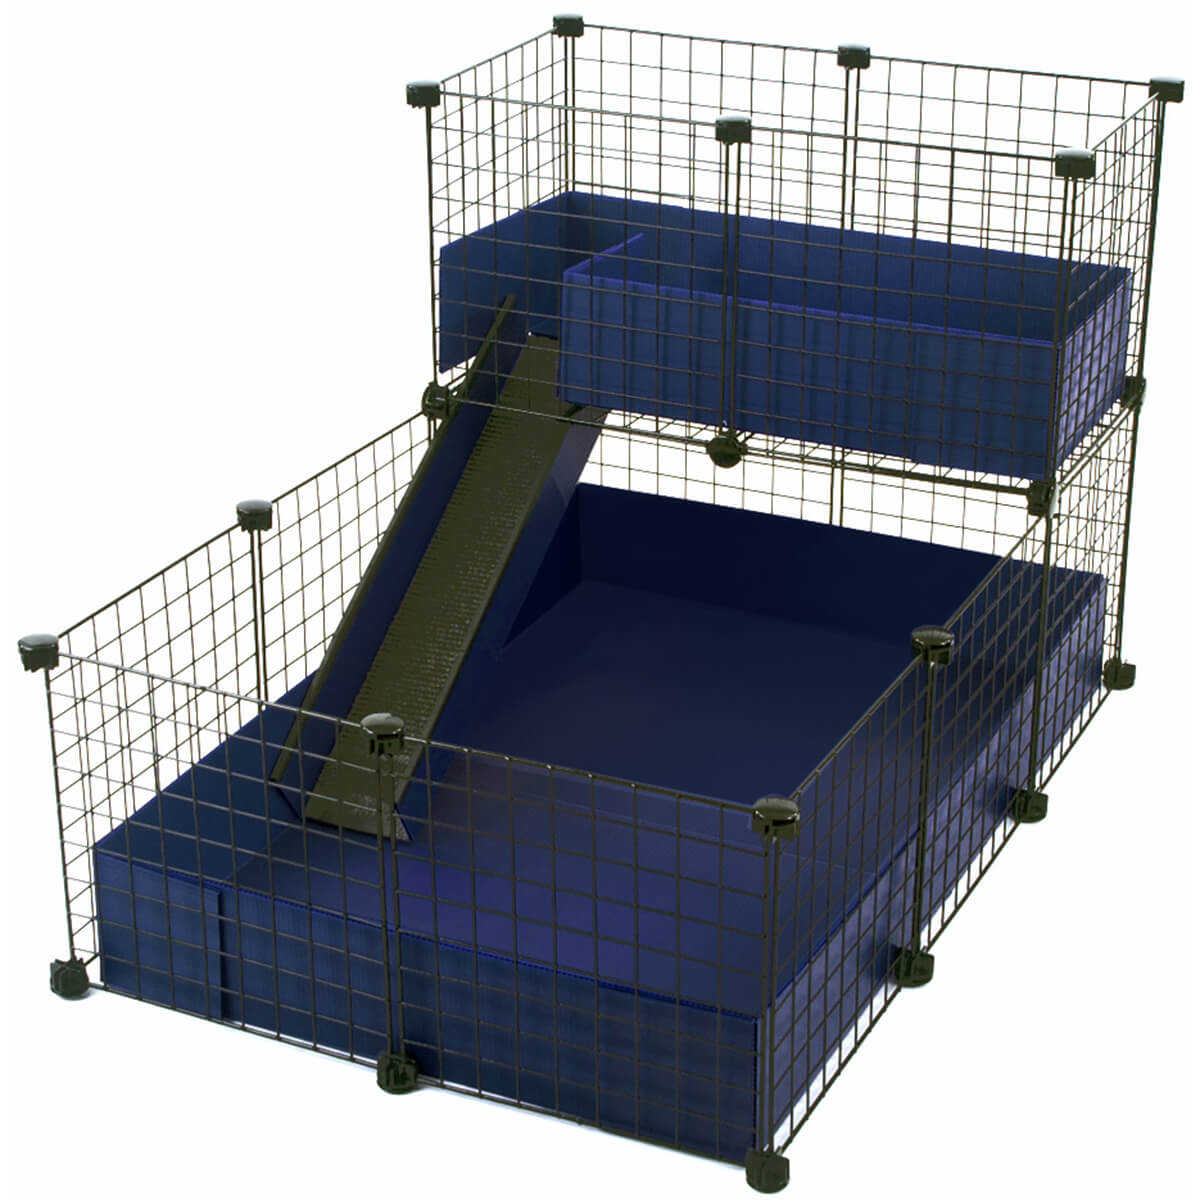 Small 2x3 grids loft deluxe cages c c cages for for Small guinea pig cages for sale